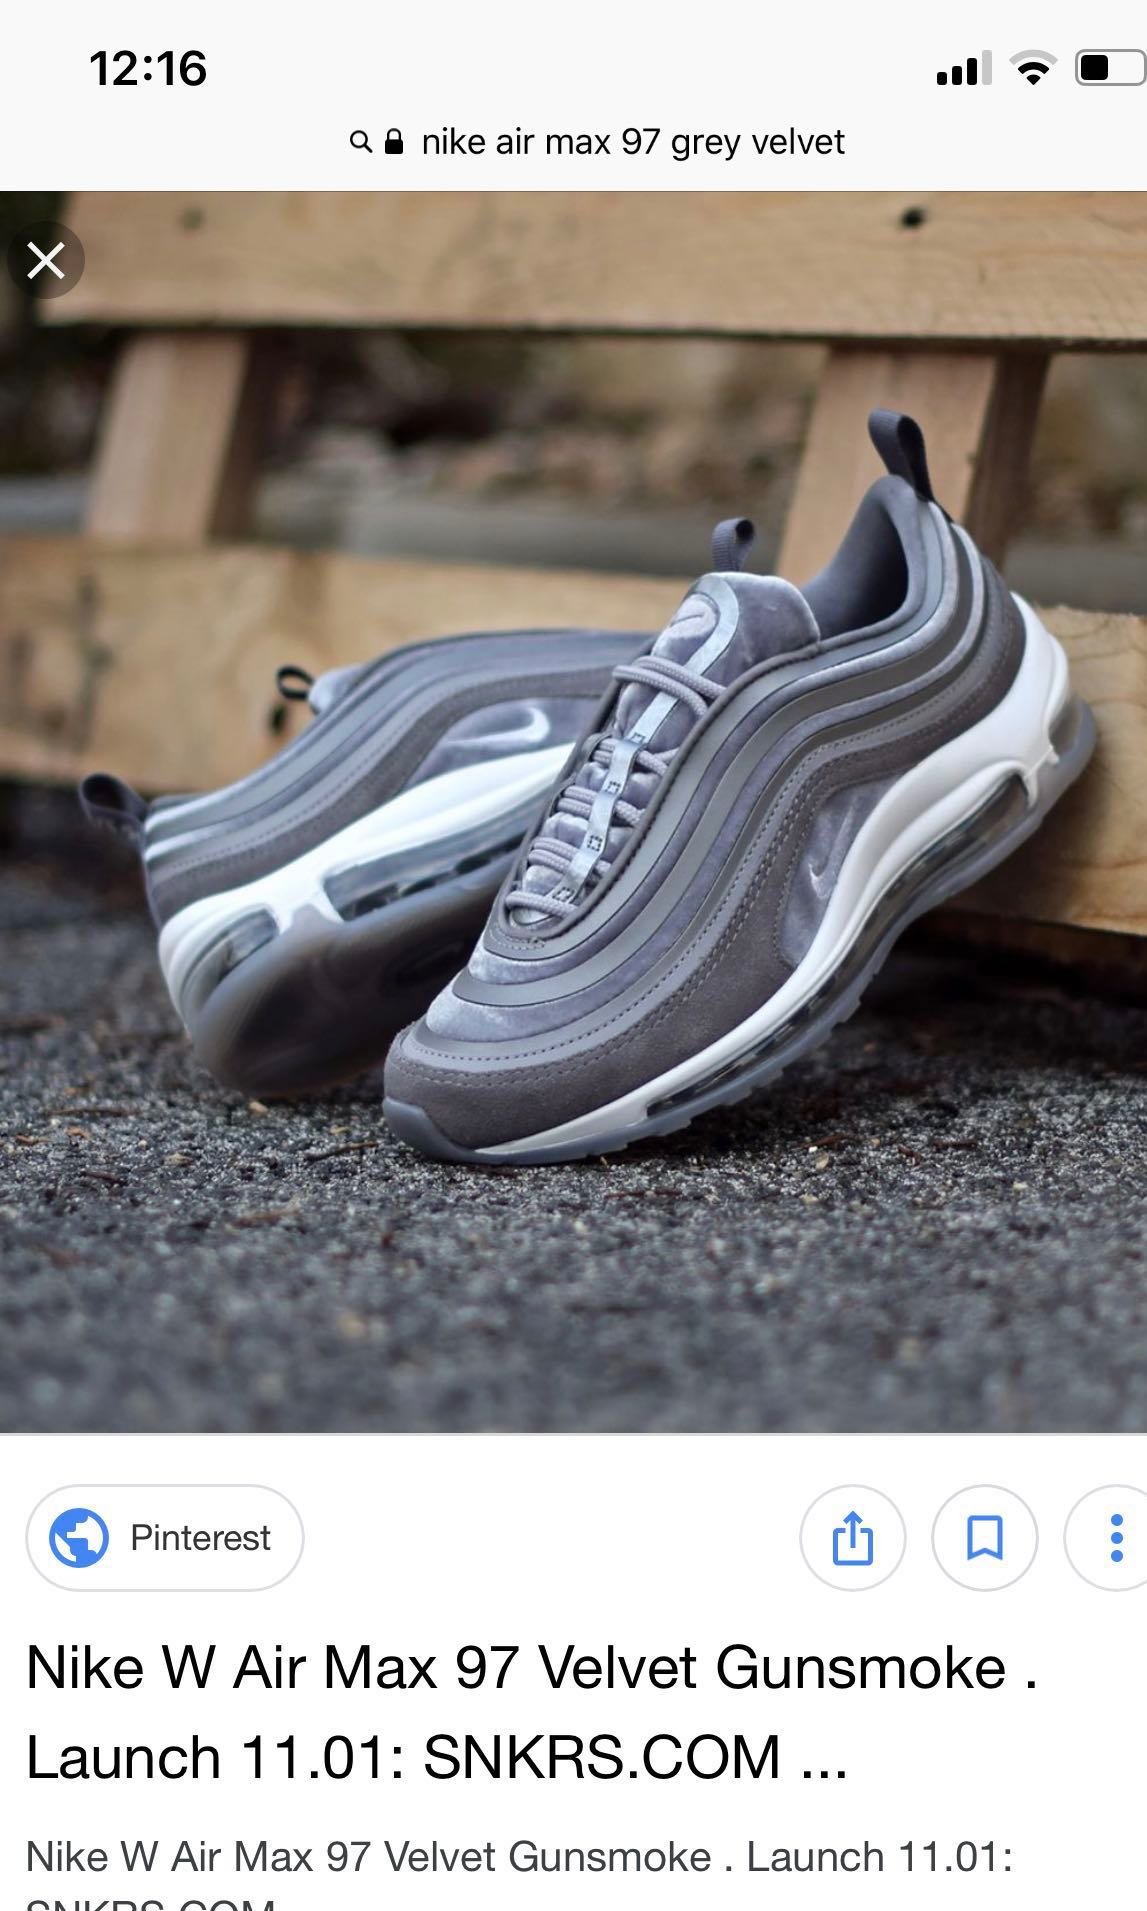 84be2ce675 Nike AirMax 97 ultra '17 velvet trainers in grey UK 5, Women's Fashion,  Shoes, Sneakers on Carousell